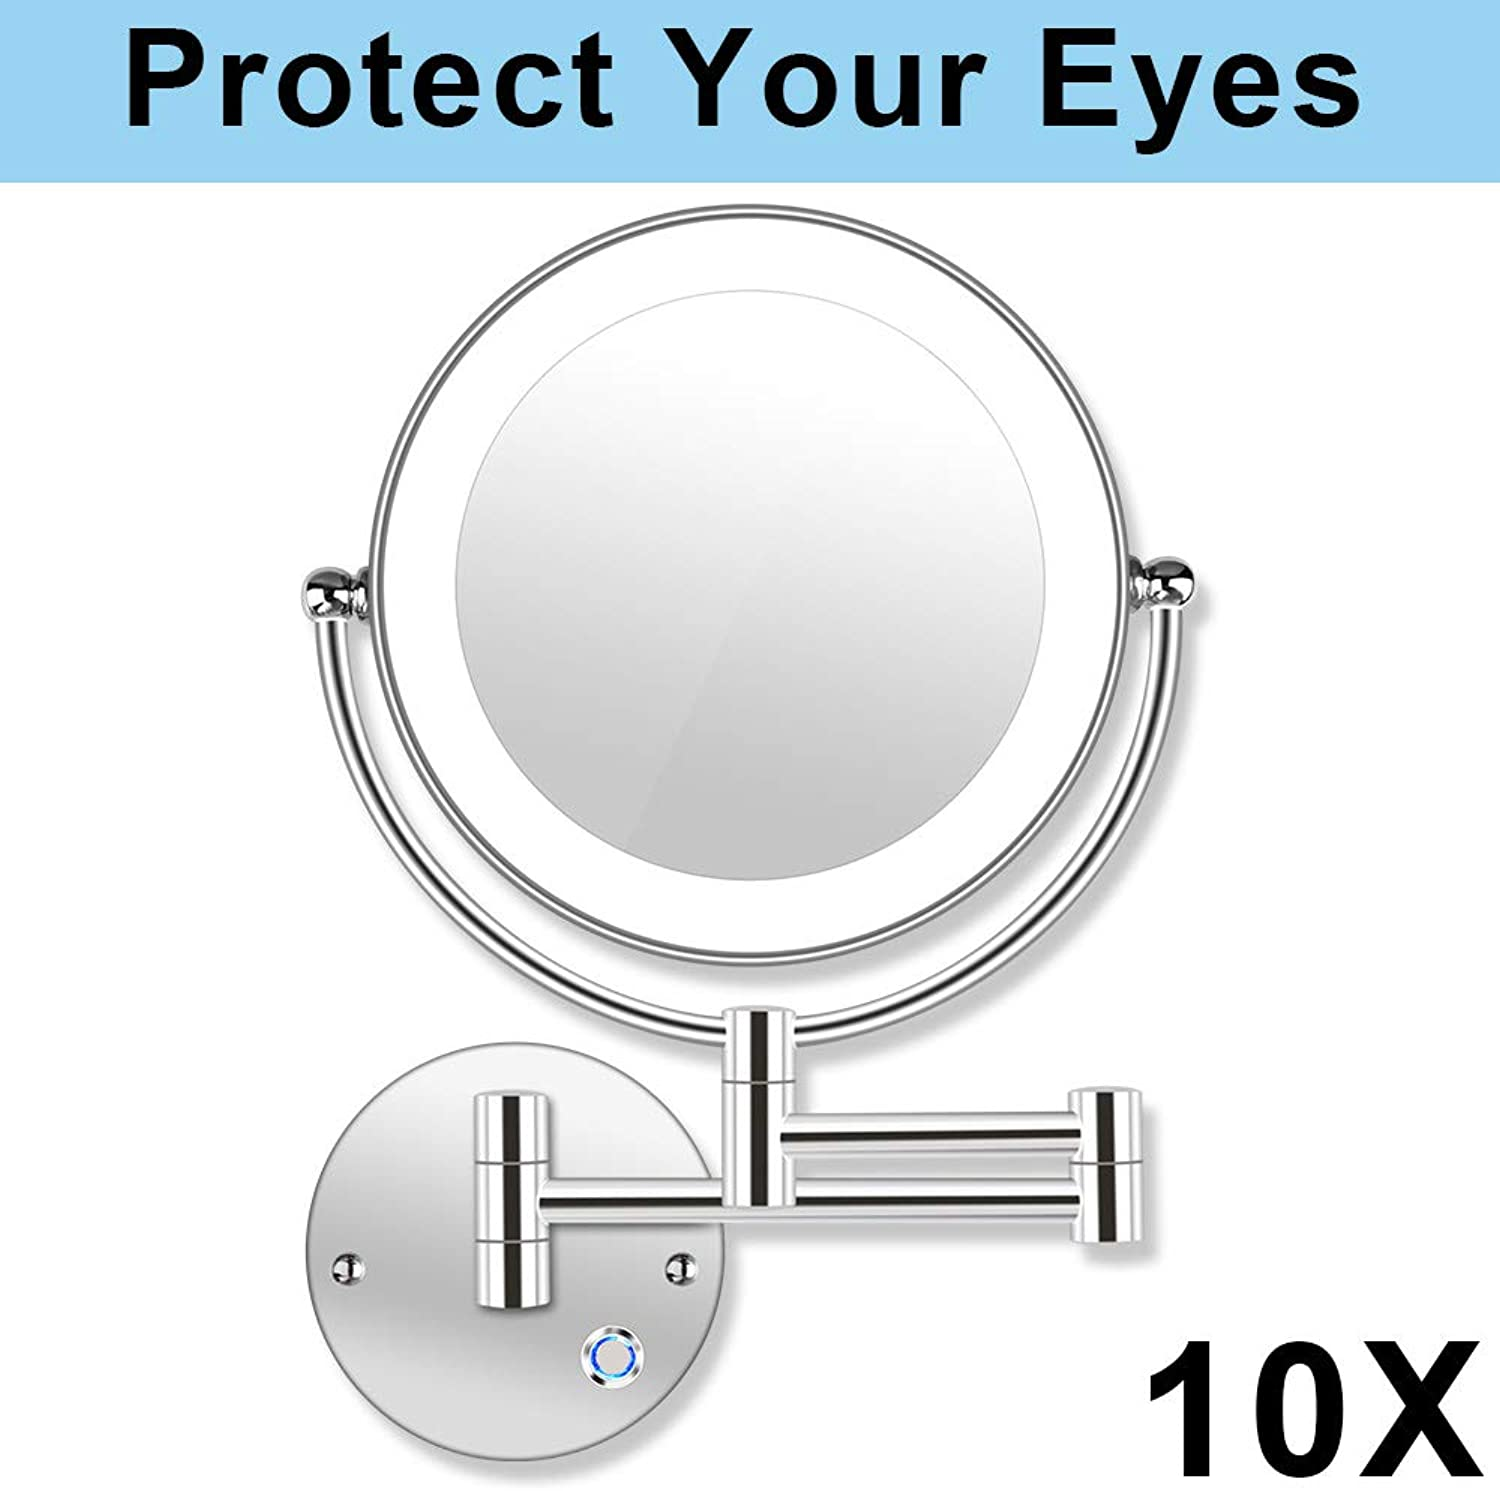 AmnoAmno 8.5  LED Double Sided Swivel Wall Mount Vanity mirror-10x Magnification,13.7  Extension,Touch Button Adjustable Light,Chromium,Shaving in Bedroom or Bathroom (8.5 Inch)